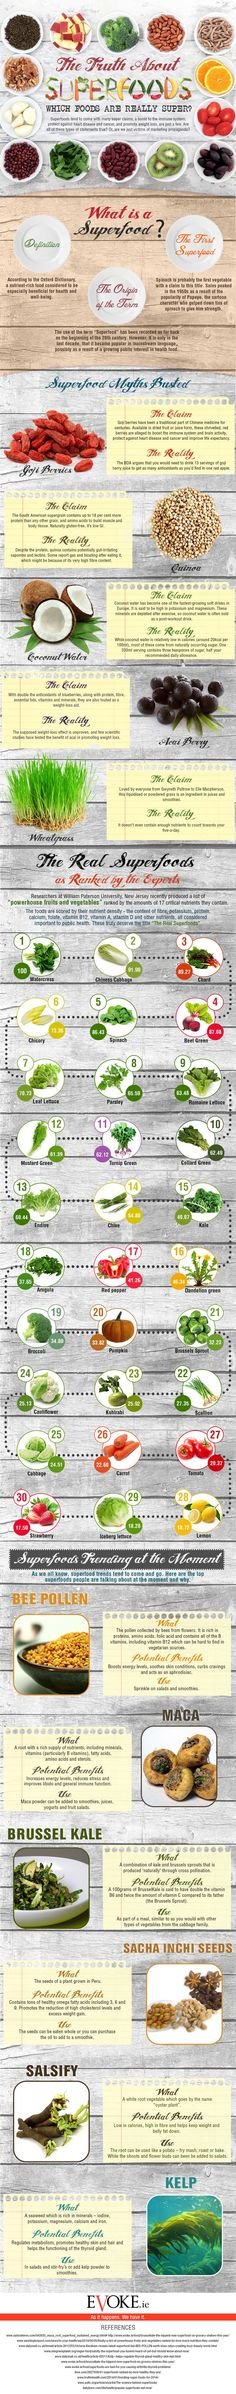 #Infographic: The Truth about #Superfoods – Which Foods are Really Super?